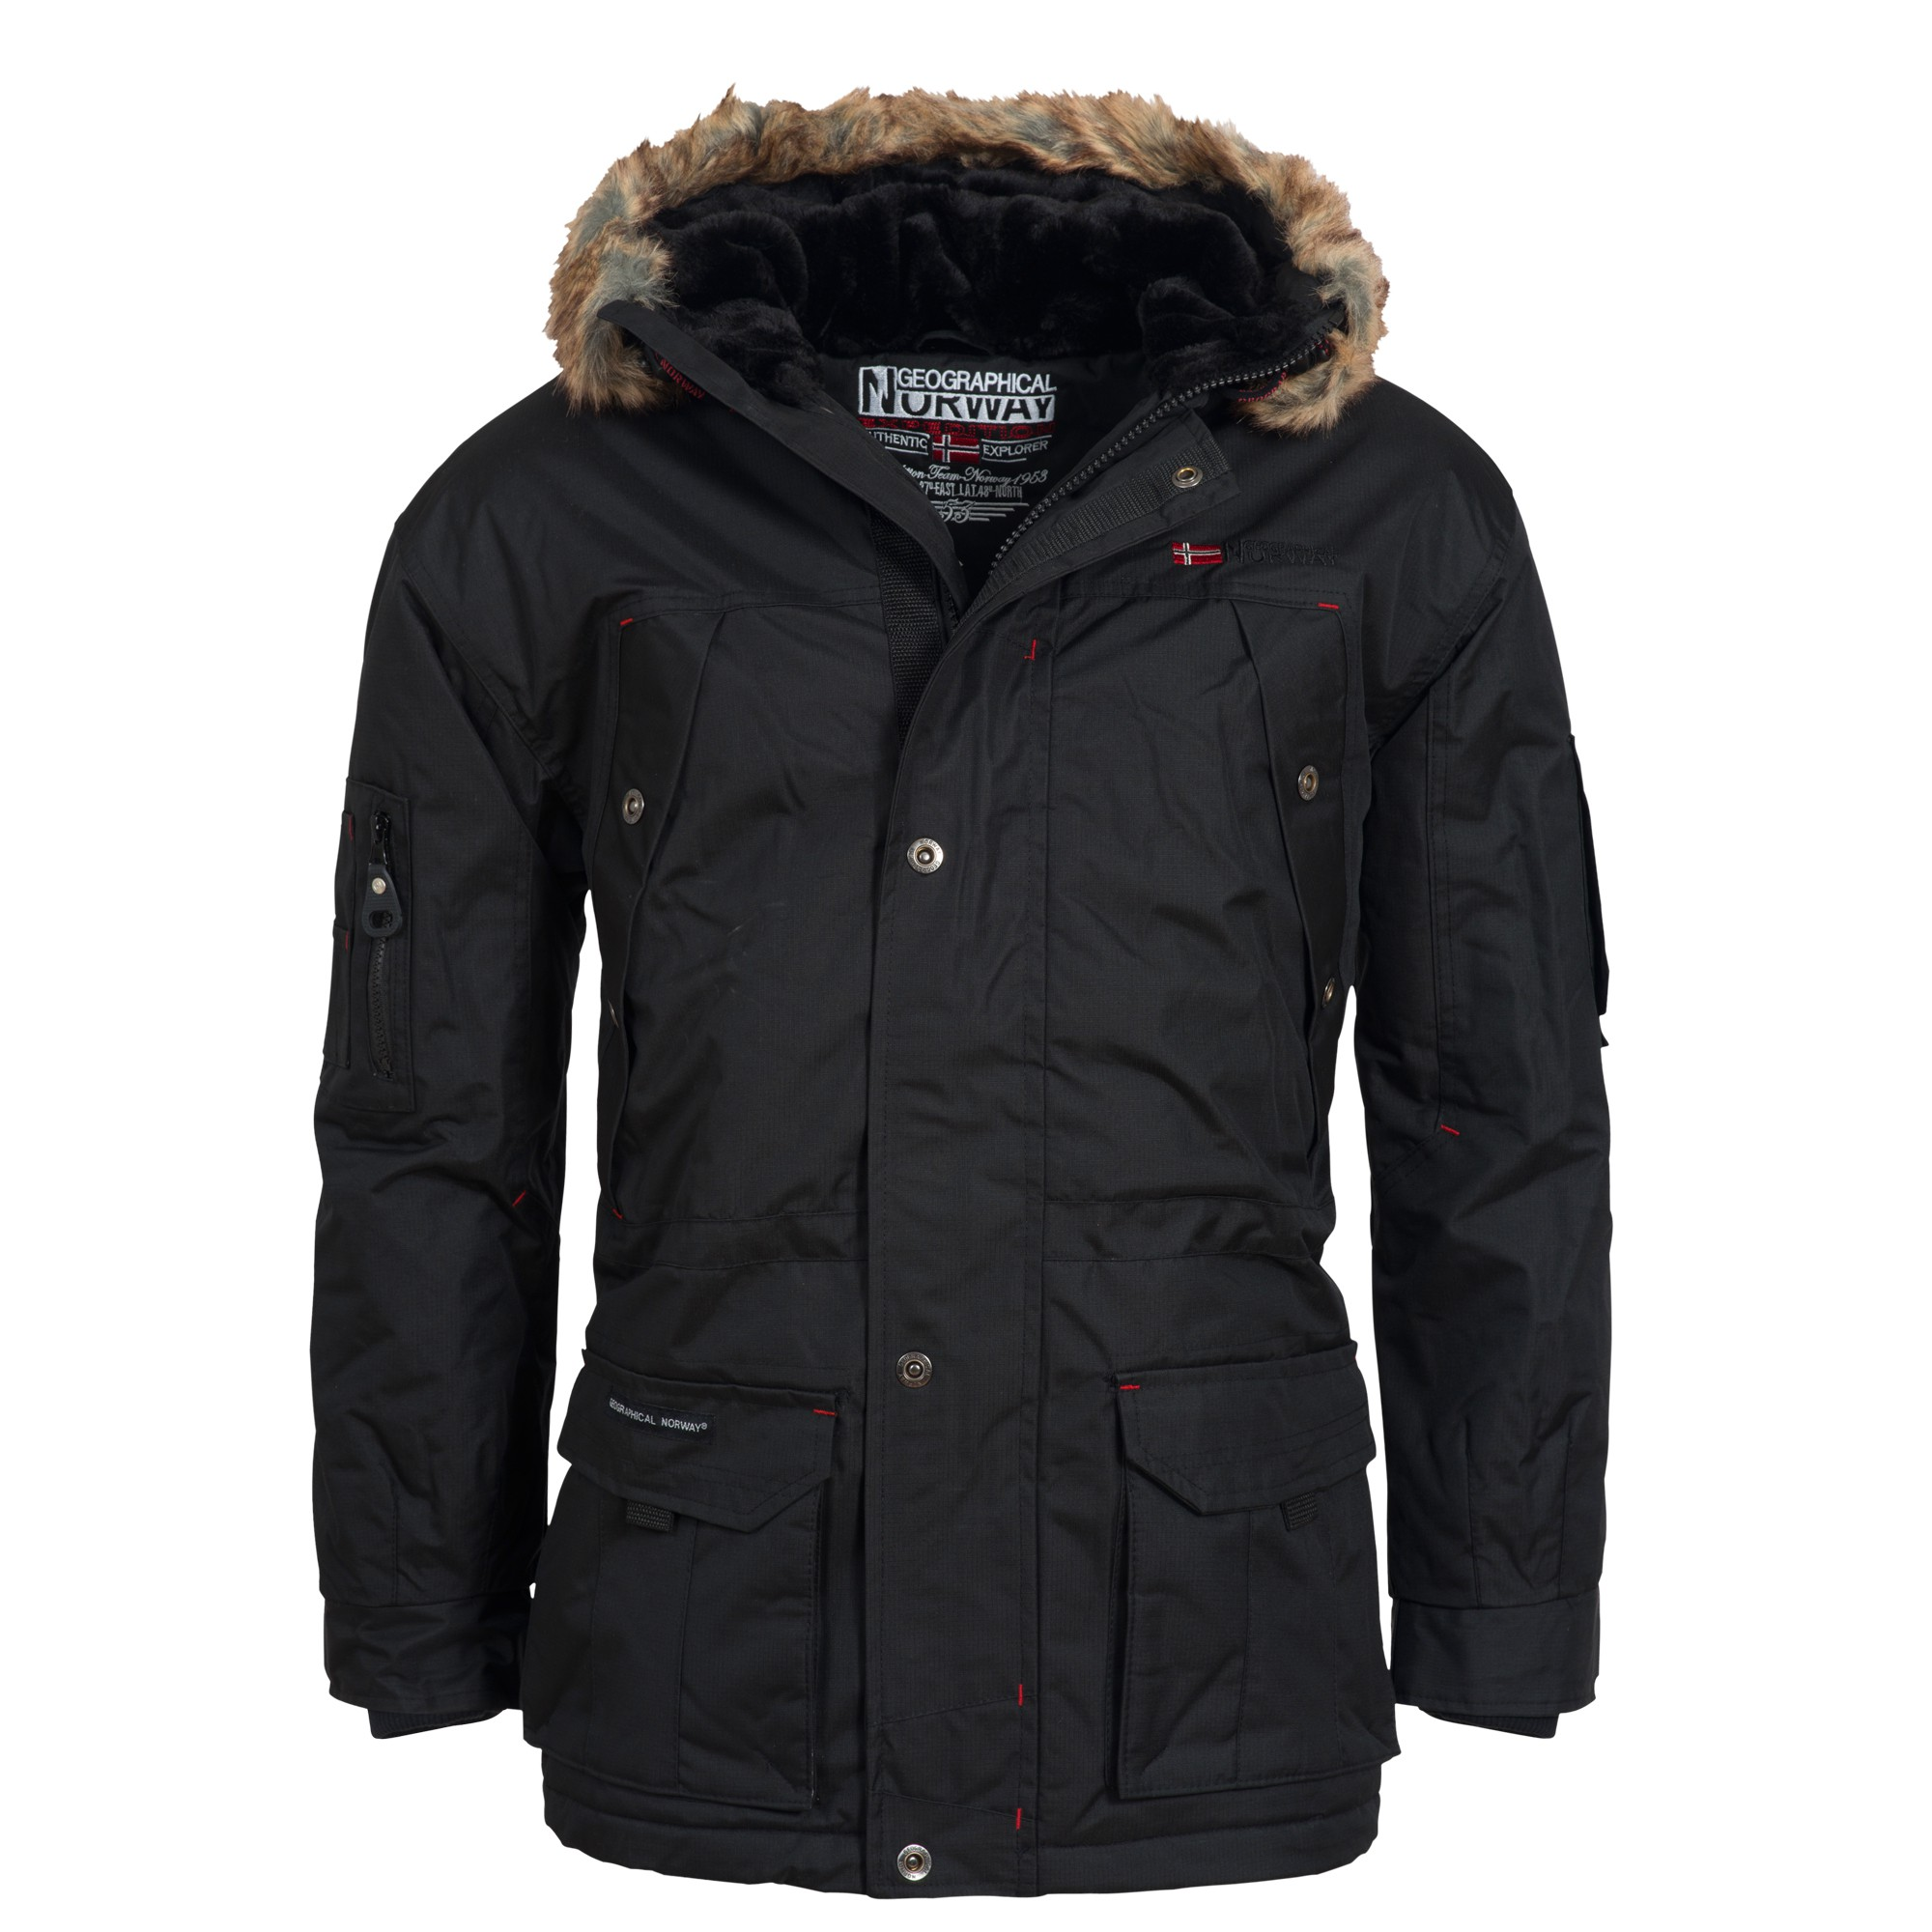 geographical norway atlas herren winterjacke jacke parka. Black Bedroom Furniture Sets. Home Design Ideas